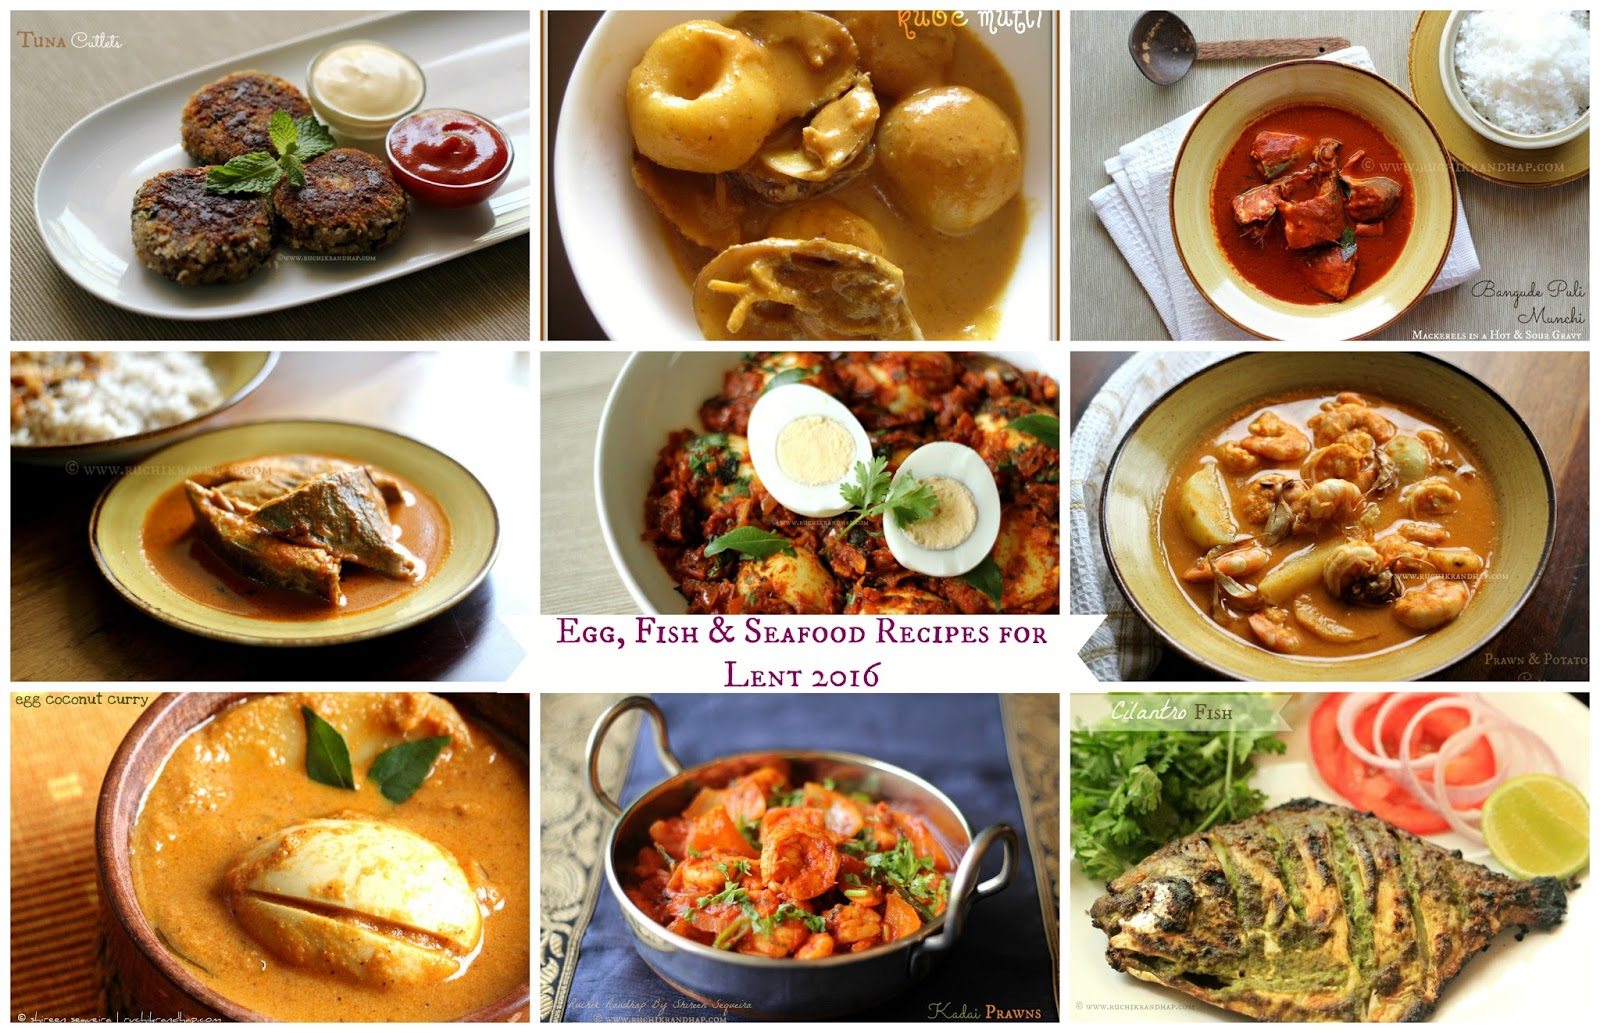 Egg fish seafood recipes for lent 2016 ruchik randhap egg fish seafood recipes for lent 2016 forumfinder Gallery